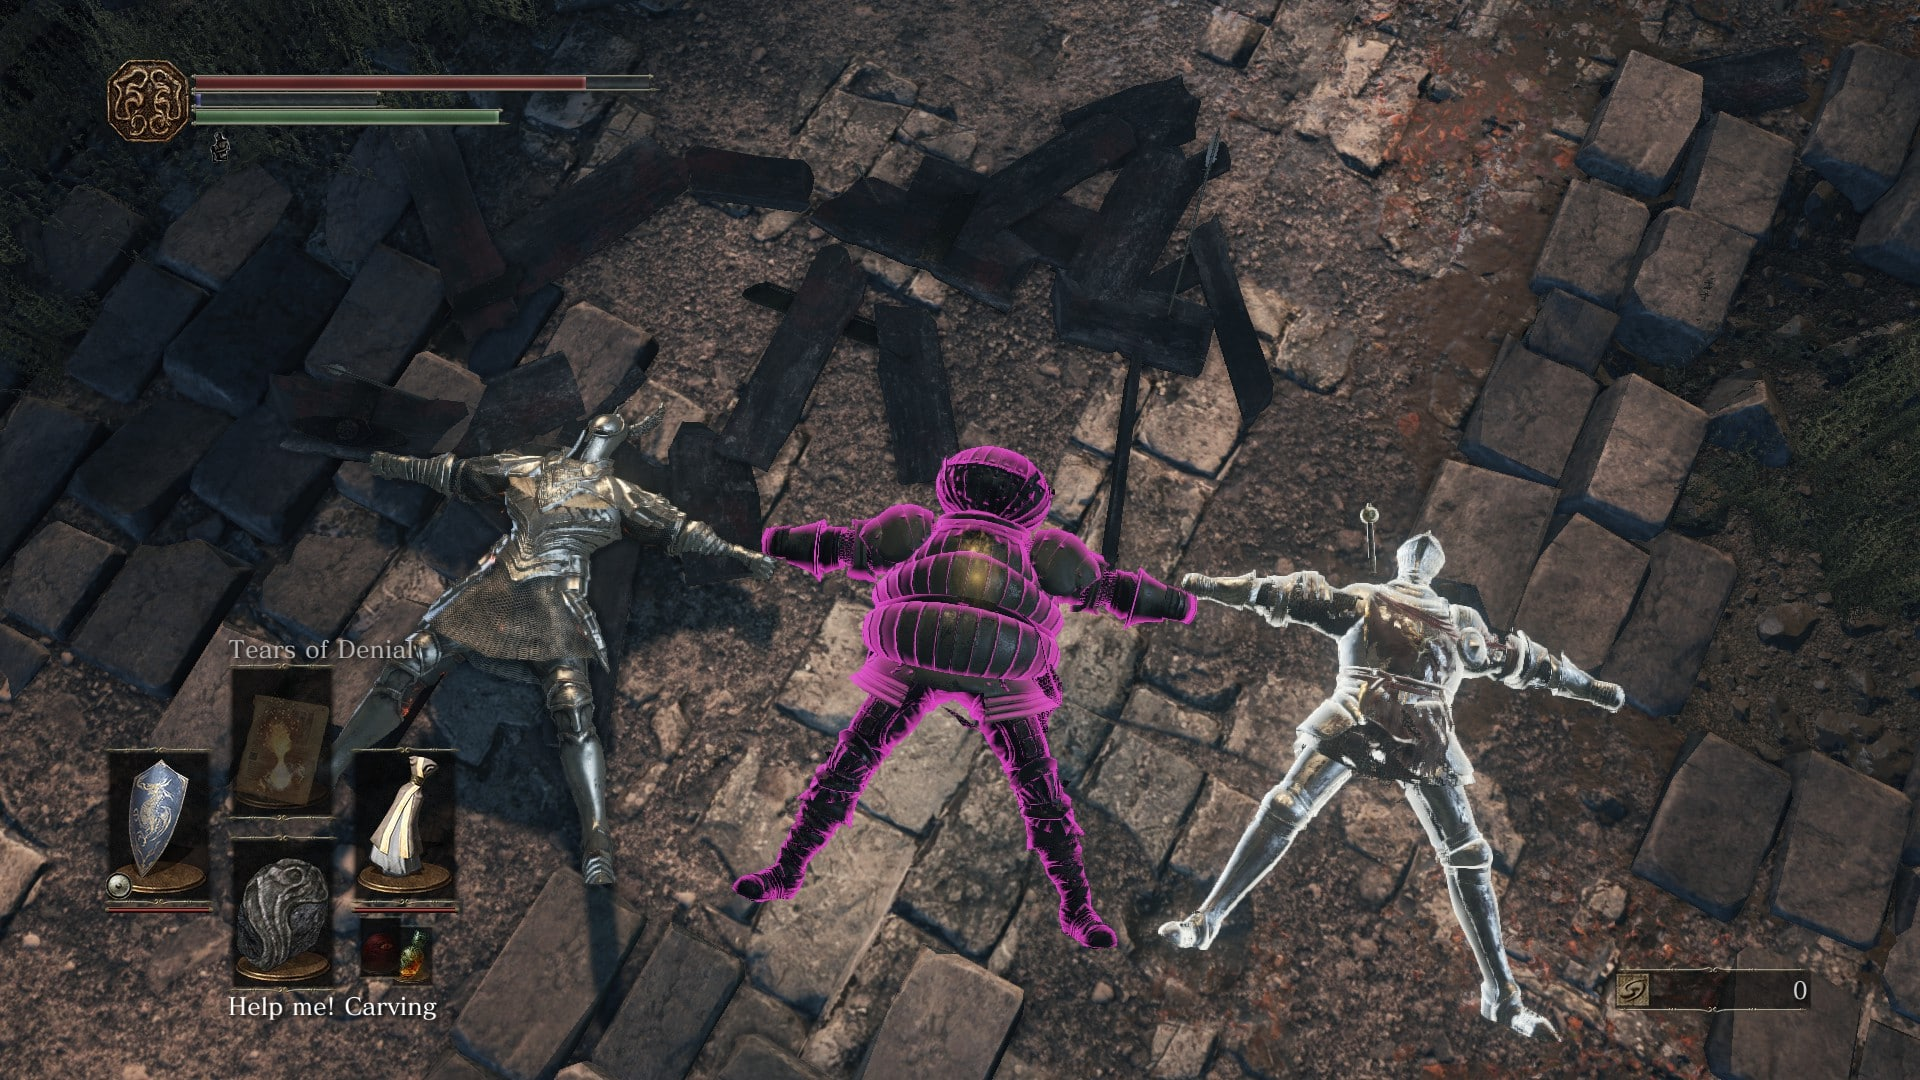 Dark Souls 3 Funny Multiplayer Moment